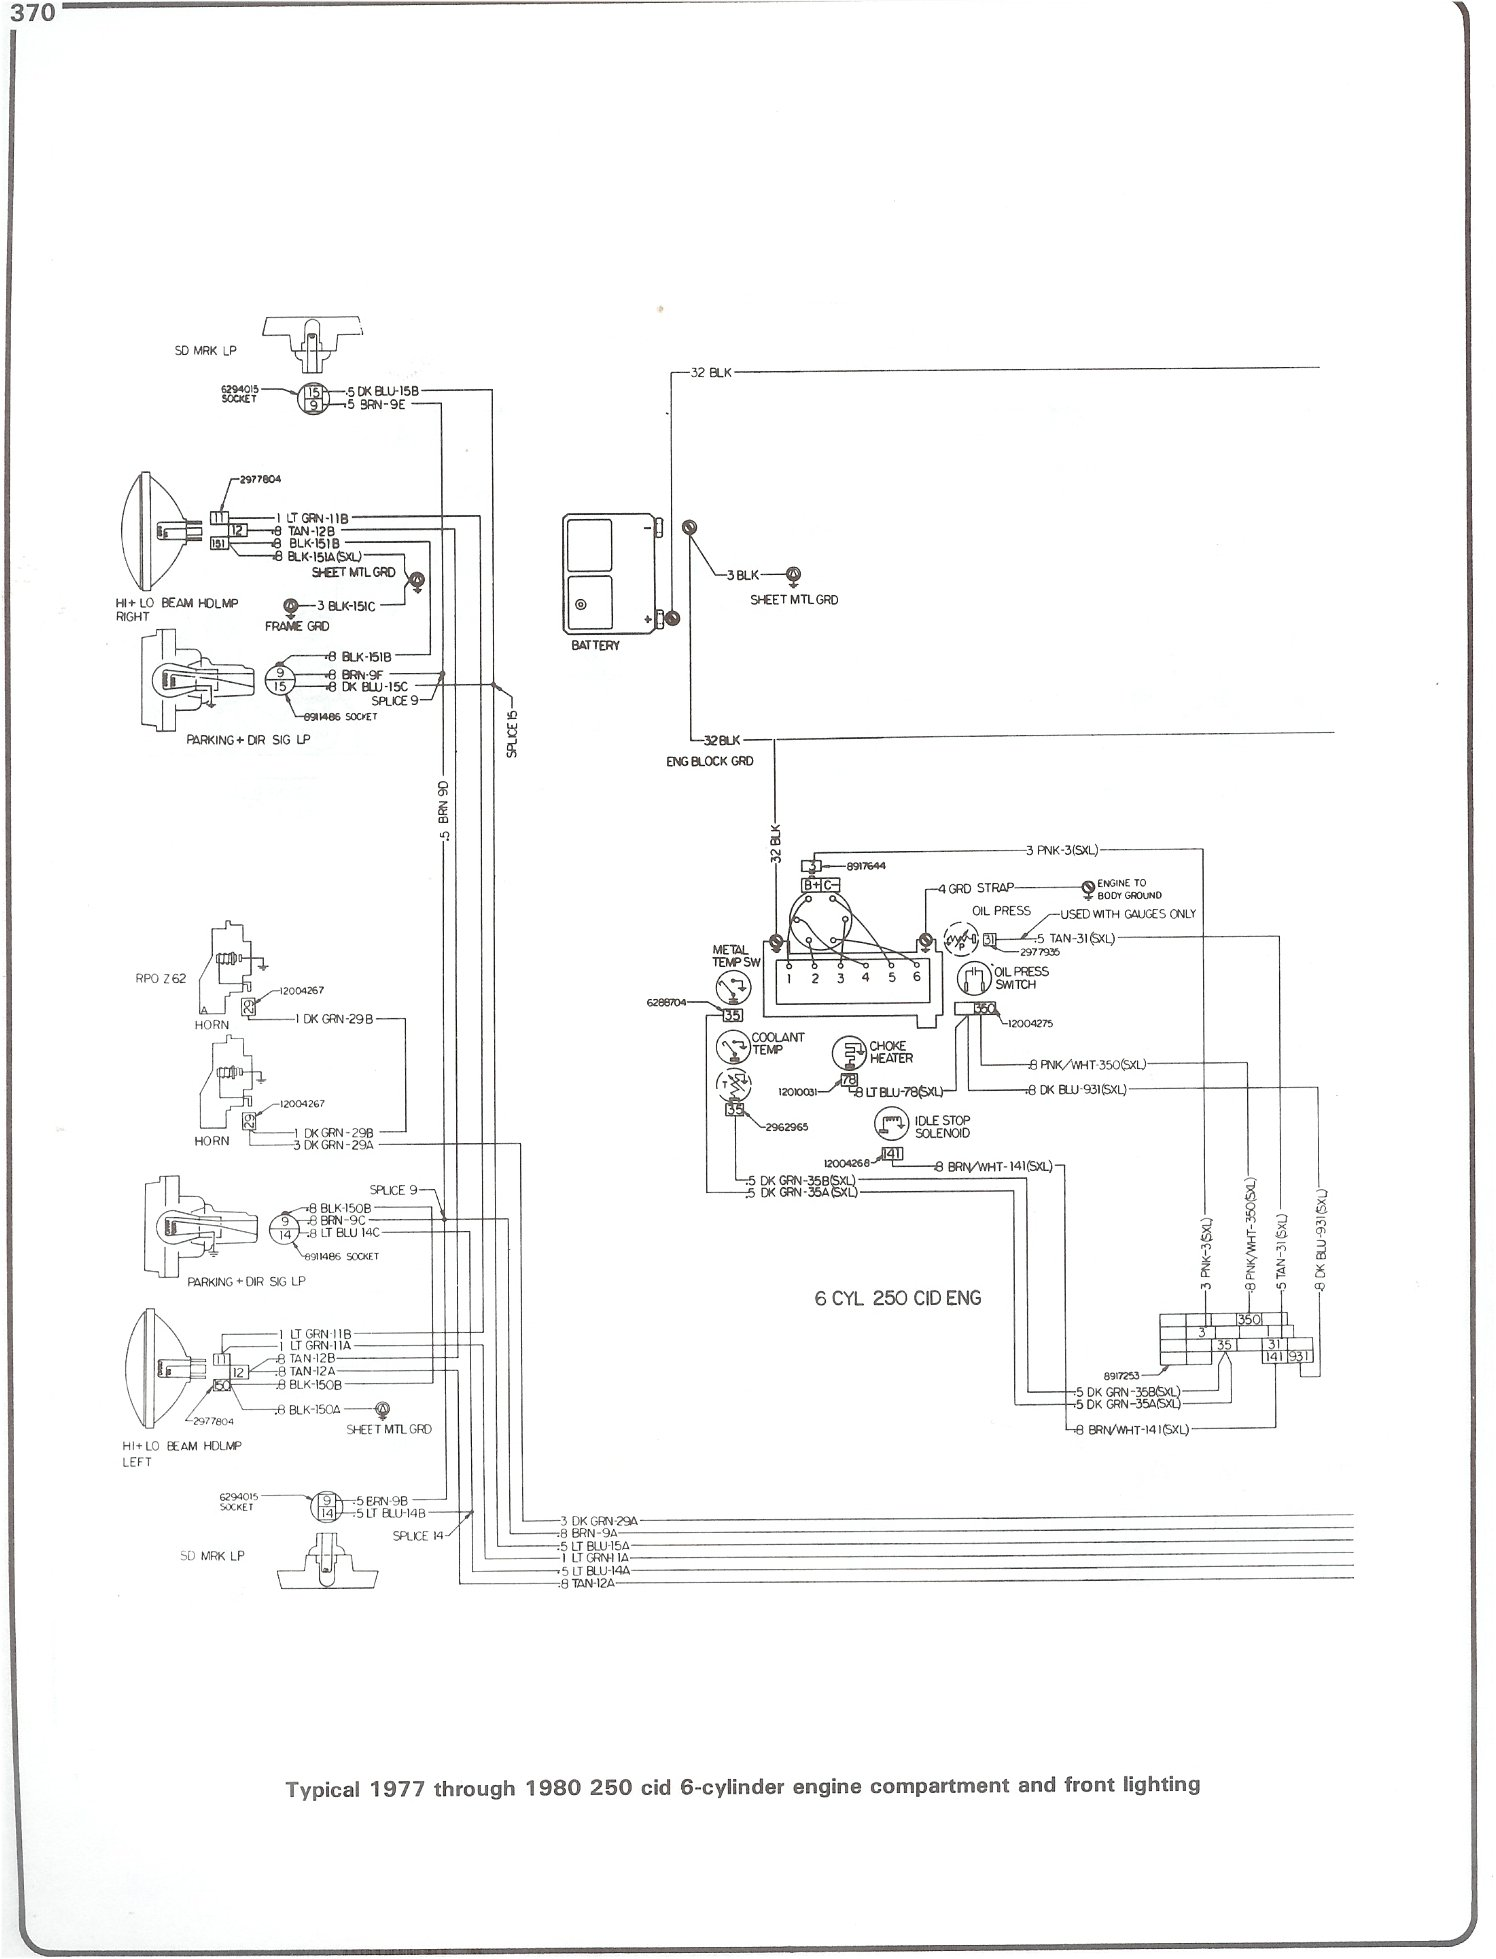 2000 chevy silverado ke light switch wiring diagram wiring diagram rh casamagdalena us